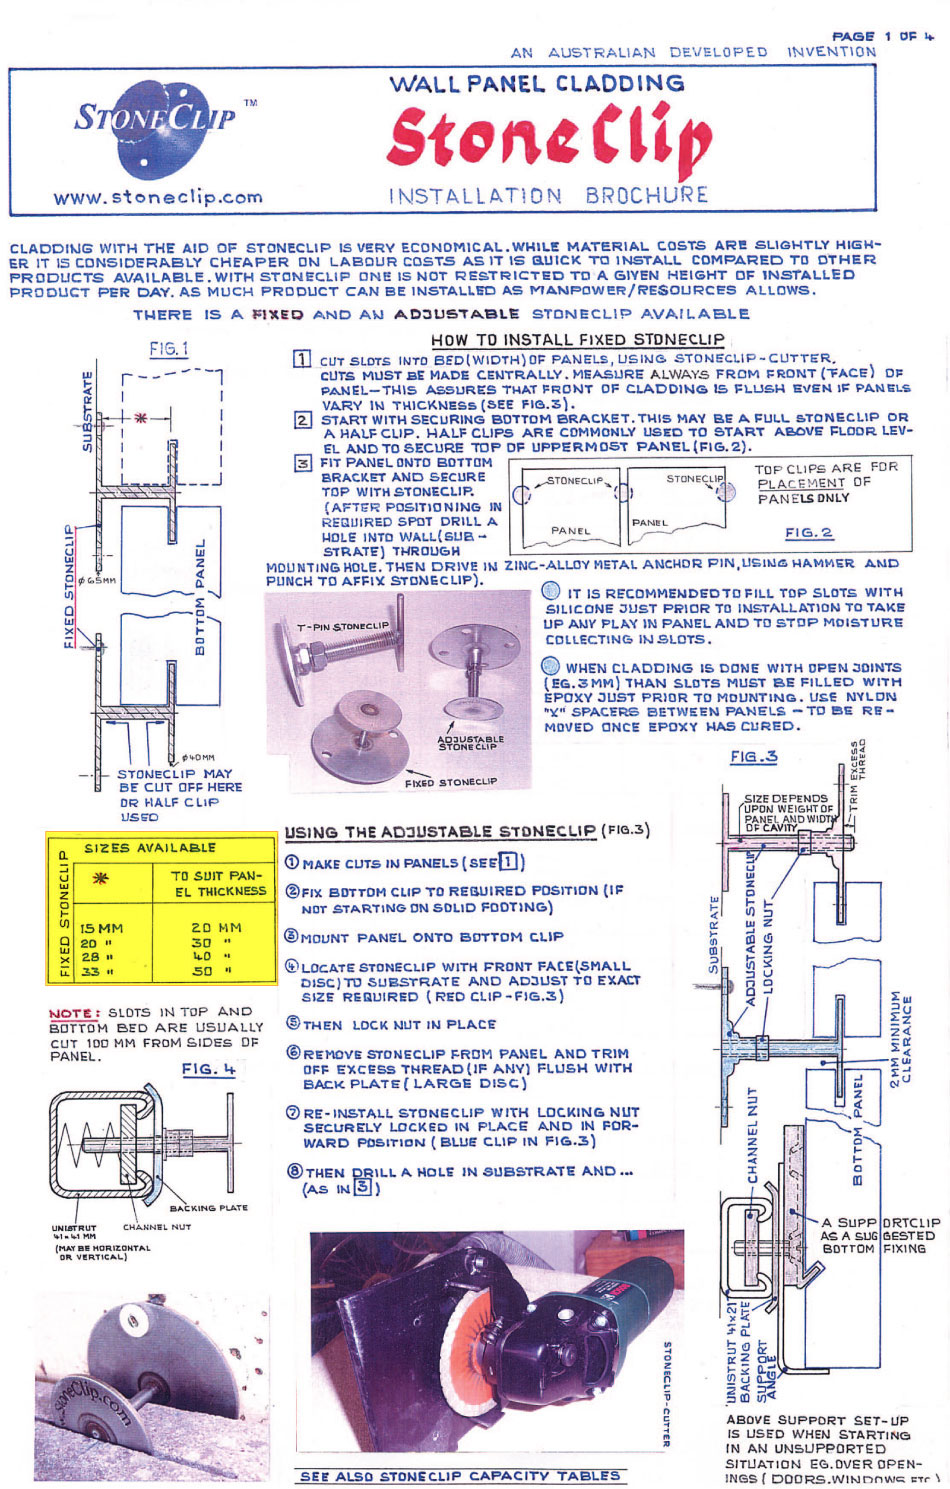 Installation Brochure of StoneCilp1